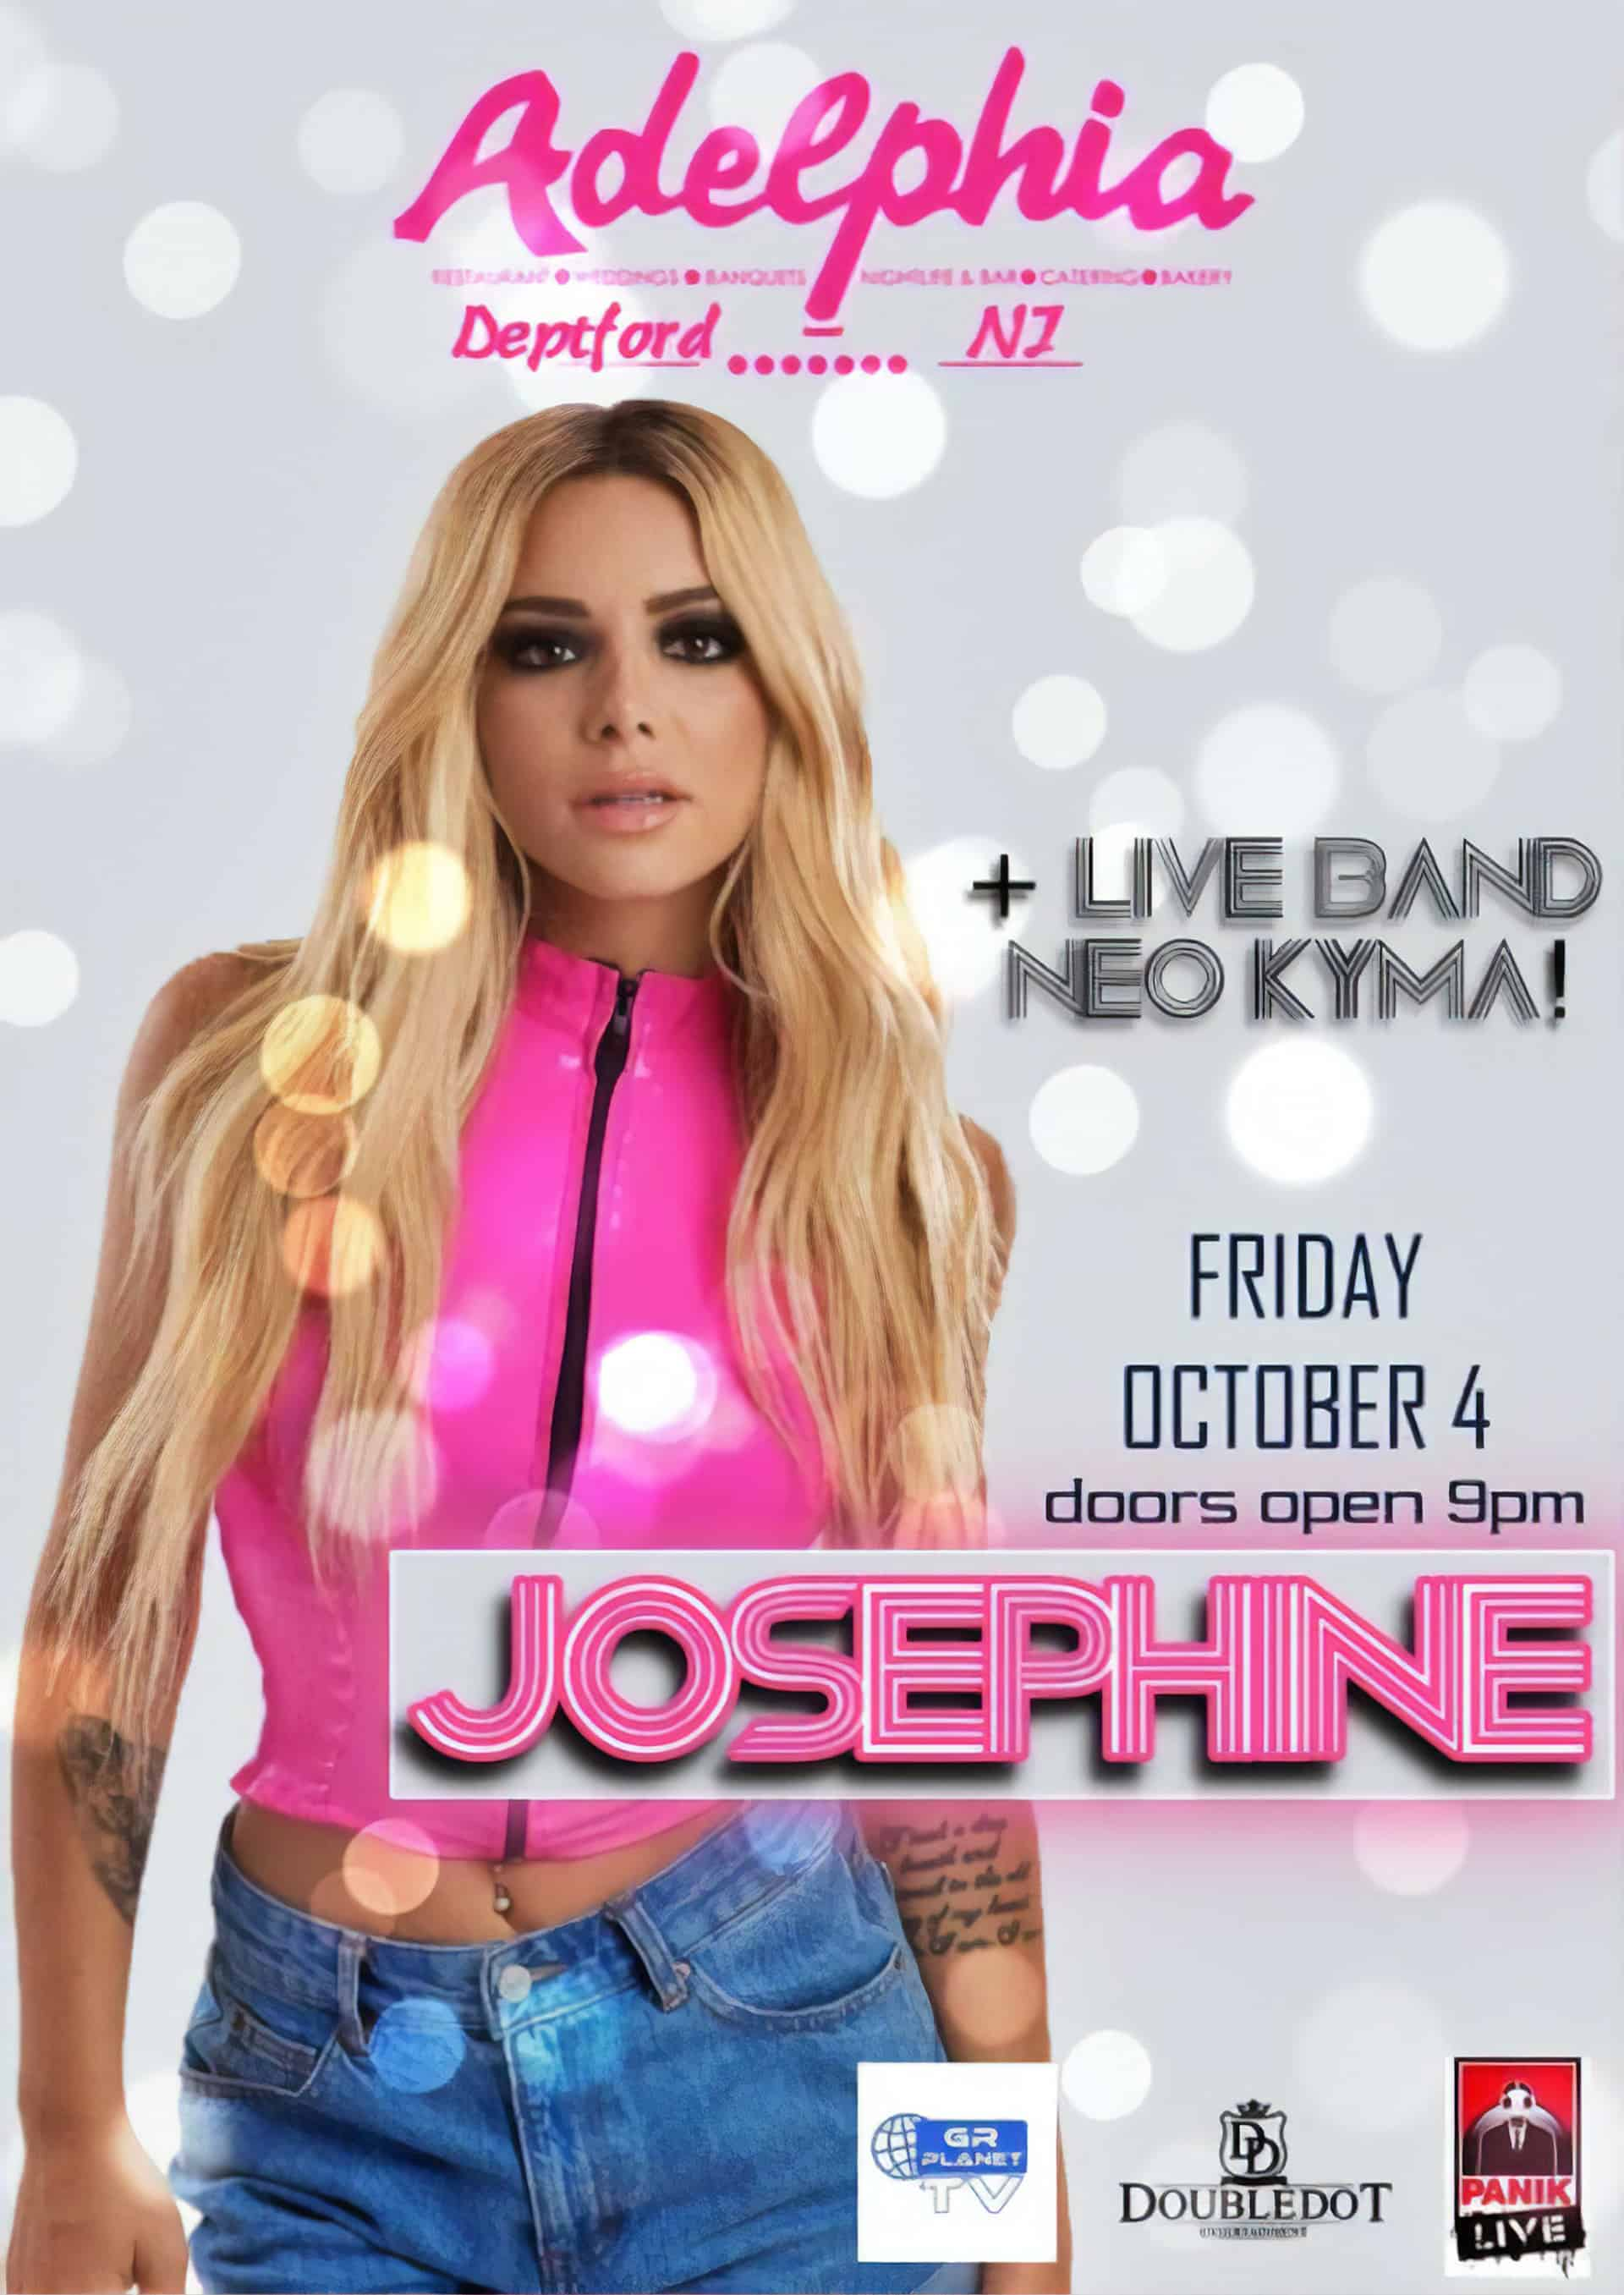 Josephine at Adelphia - Flyer